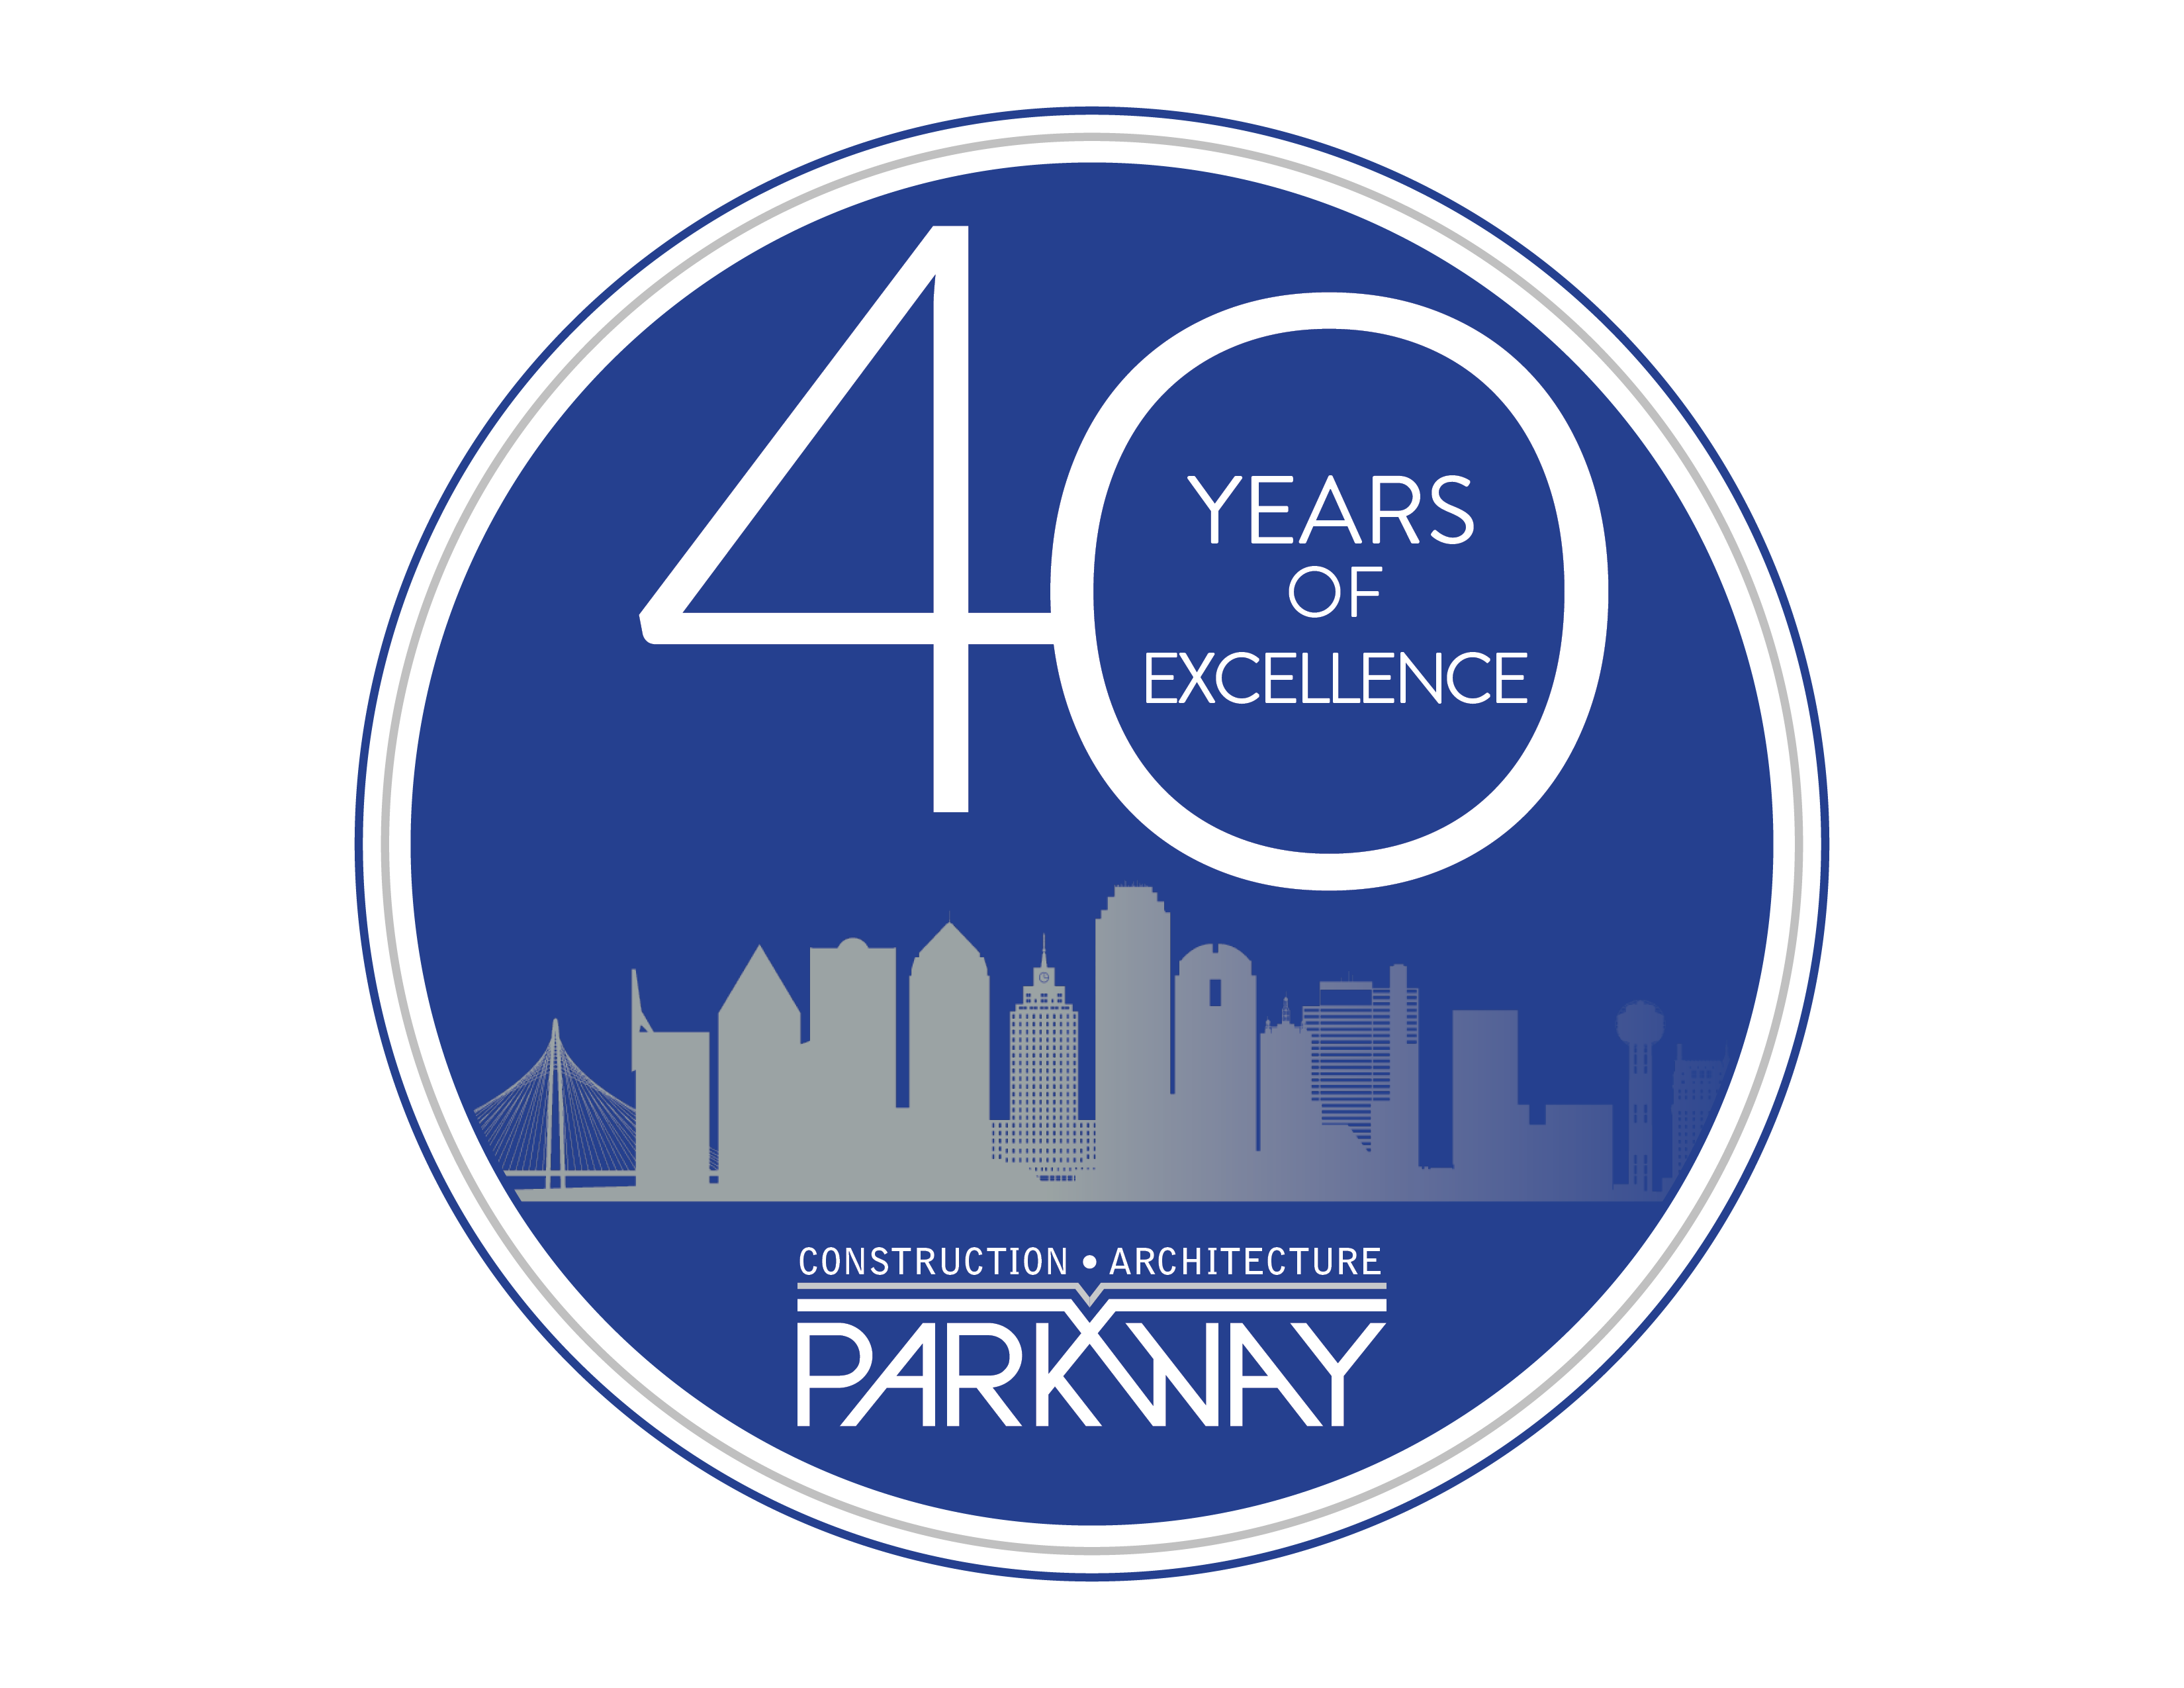 Honoring the Past. Building the Future. Parkway C&A Celebrates 40 Years.